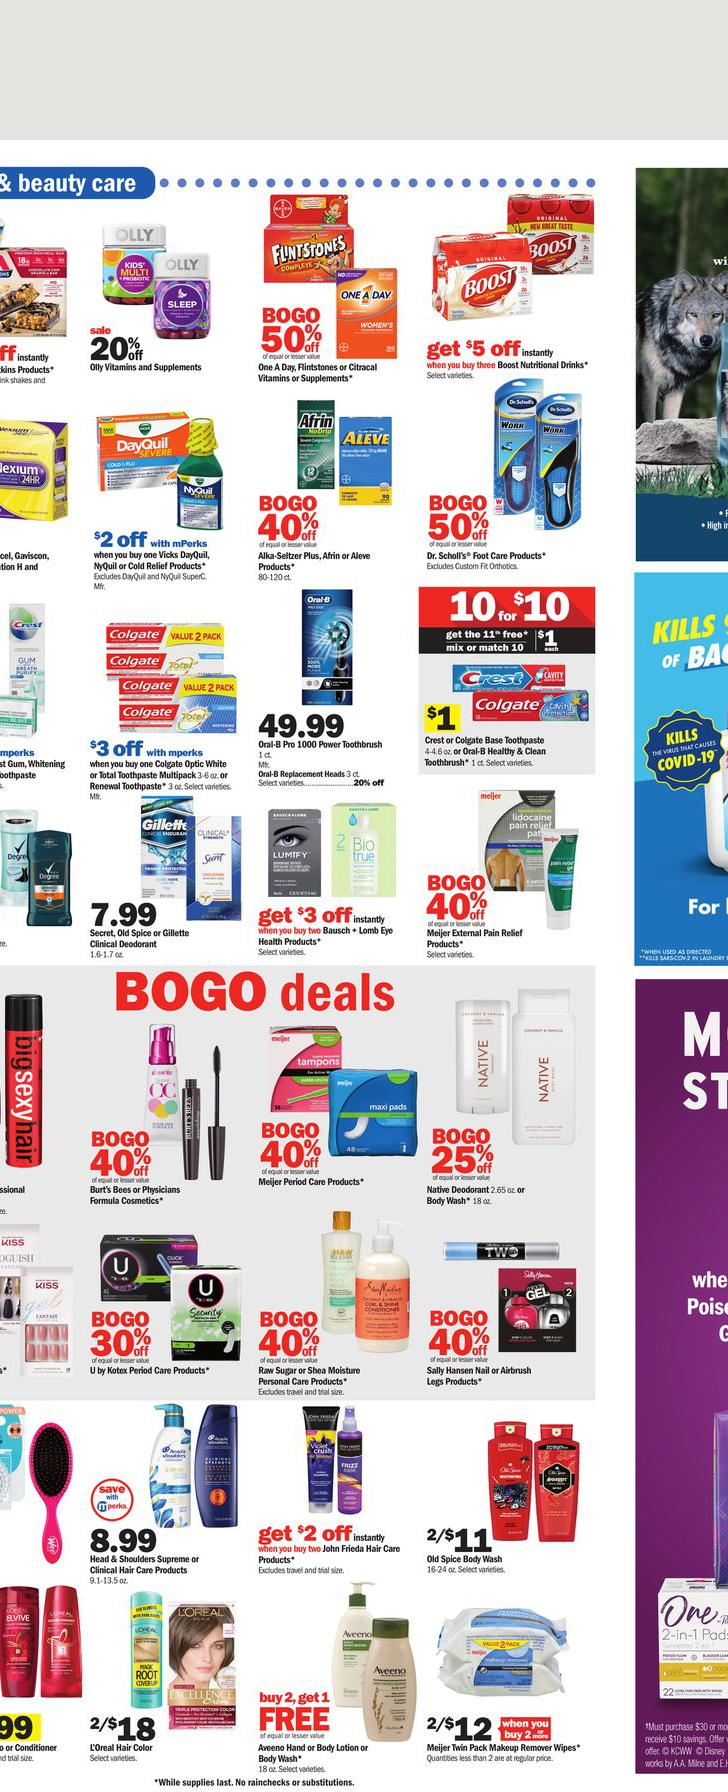 12.09.2021 Meijer ad 17. page